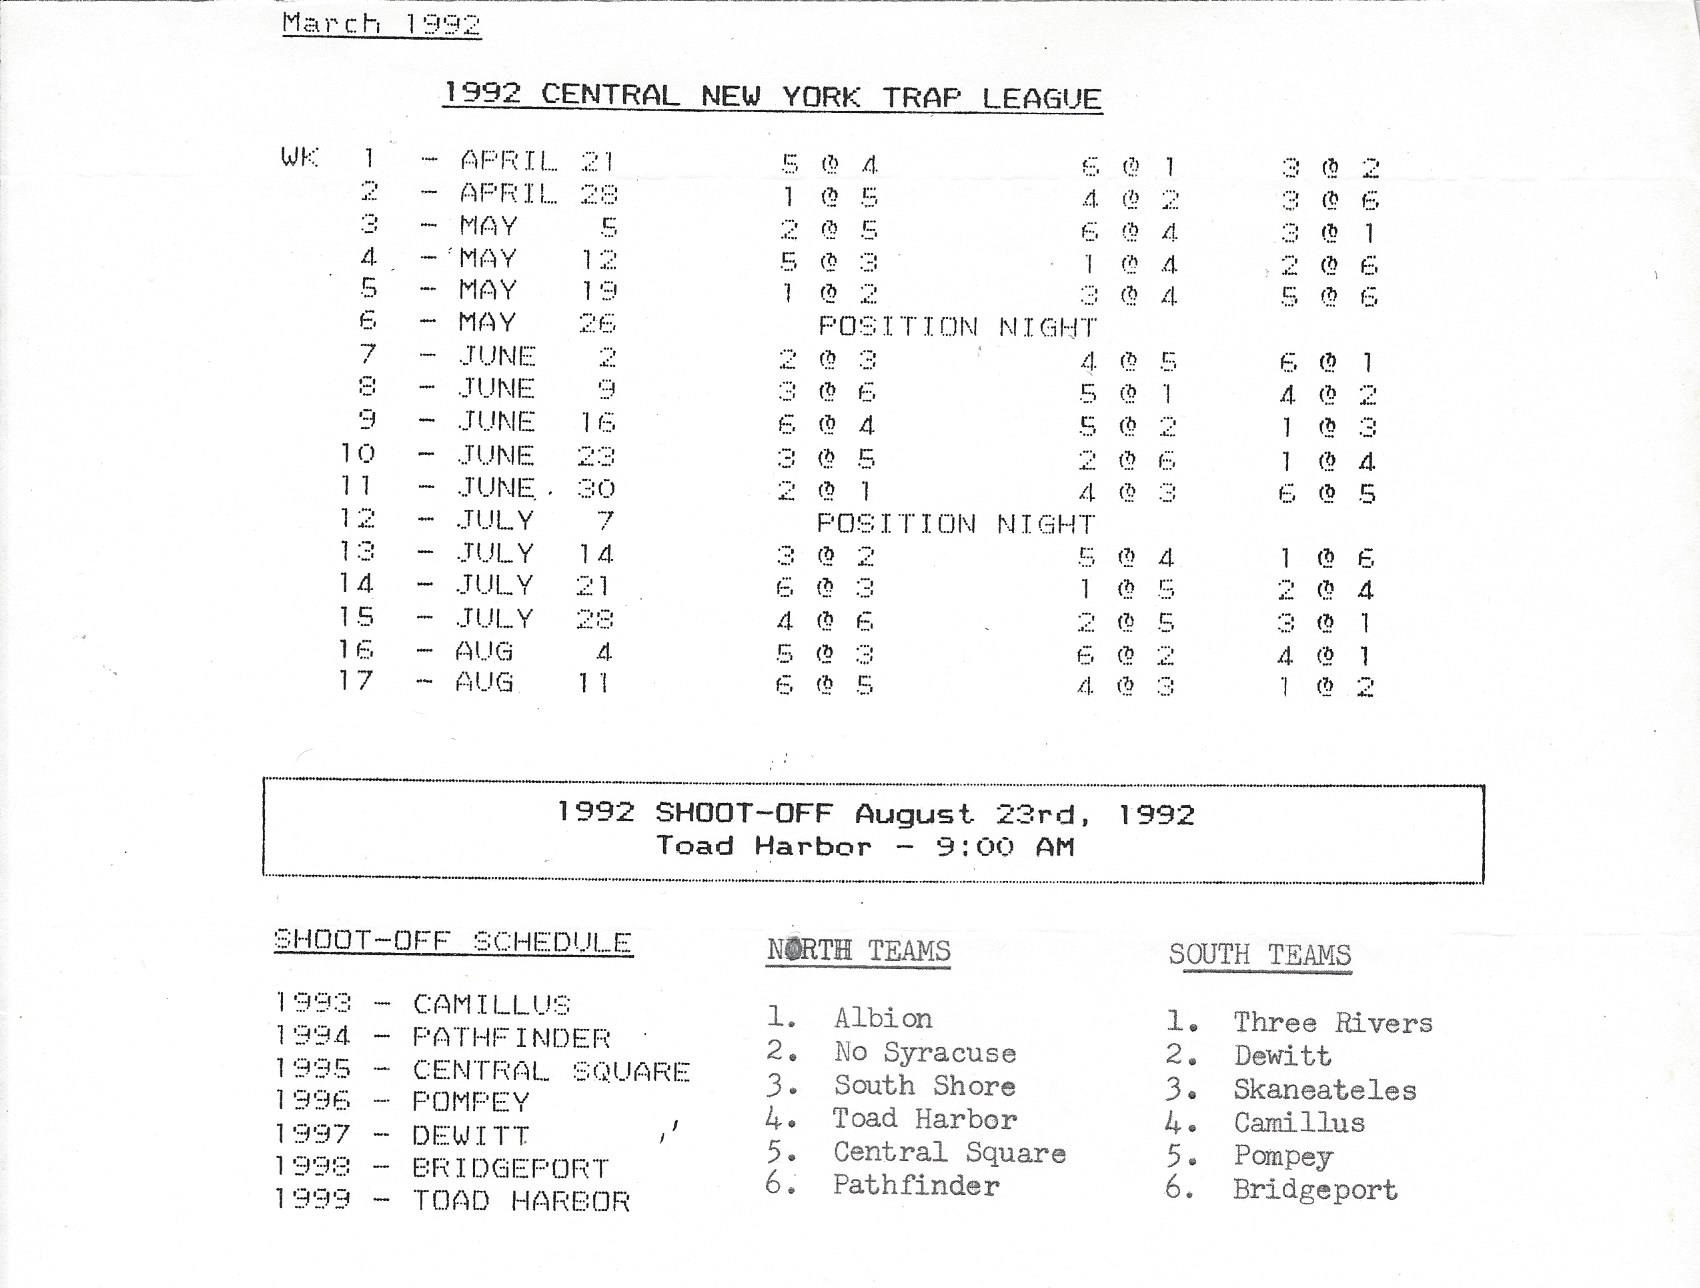 CNYTL SCHEDULE 1992